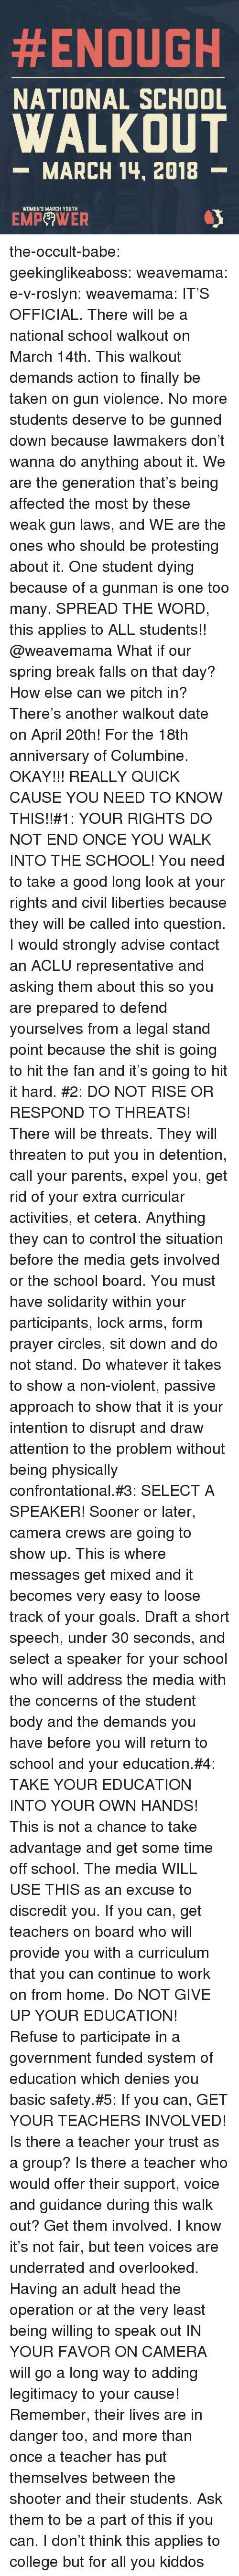 College, Goals, and Head:  #ENOUGH  NATIONAL SCHOOL  WALKOUT  -MARCH 14, 2018  WOMEN'S MARCH YOUTH  EMPeWER the-occult-babe: geekinglikeaboss:  weavemama:  e-v-roslyn:   weavemama:  IT'S OFFICIAL. There will be a national school walkout on March 14th. This walkout demands action to finally be taken on gun violence. No more students deserve to be gunned down because lawmakers don't wanna do anything about it. We are the generation that's being affected the most by these weak gun laws, and WE are the ones who should be protesting about it. One student dying because of a gunman is one too many.SPREAD THE WORD, this applies to ALL students!!  @weavemama What if our spring break falls on that day? How else can we pitch in?   There's another walkout date on April 20th! For  the 18th anniversary of Columbine.   OKAY!!! REALLY QUICK CAUSE YOU NEED TO KNOW THIS!!#1: YOUR RIGHTS DO NOT END ONCE YOU WALK INTO THE SCHOOL! You need to take a good long look at your rights and civil liberties because they will be called into question. I would strongly advise contact an ACLU representative and asking them about this so you are prepared to defend yourselves from a legal stand point because the shit is going to hit the fan and it's going to hit it hard. #2: DO NOT RISE OR RESPOND TO THREATS! There will be threats. They will threaten to put you in detention, call your parents, expel you, get rid of your extra curricular activities, et cetera. Anything they can to control the situation before the media gets involved or the school board. You must have solidarity within your participants, lock arms, form prayer circles, sit down and do not stand. Do whatever it takes to show a non-violent, passive approach to show that it is your intention to disrupt and draw attention to the problem without being physically confrontational.#3: SELECT A SPEAKER! Sooner or later, camera crews are going to show up. This is where messages get mixed and it becomes very easy to loose track of your goals. Draf